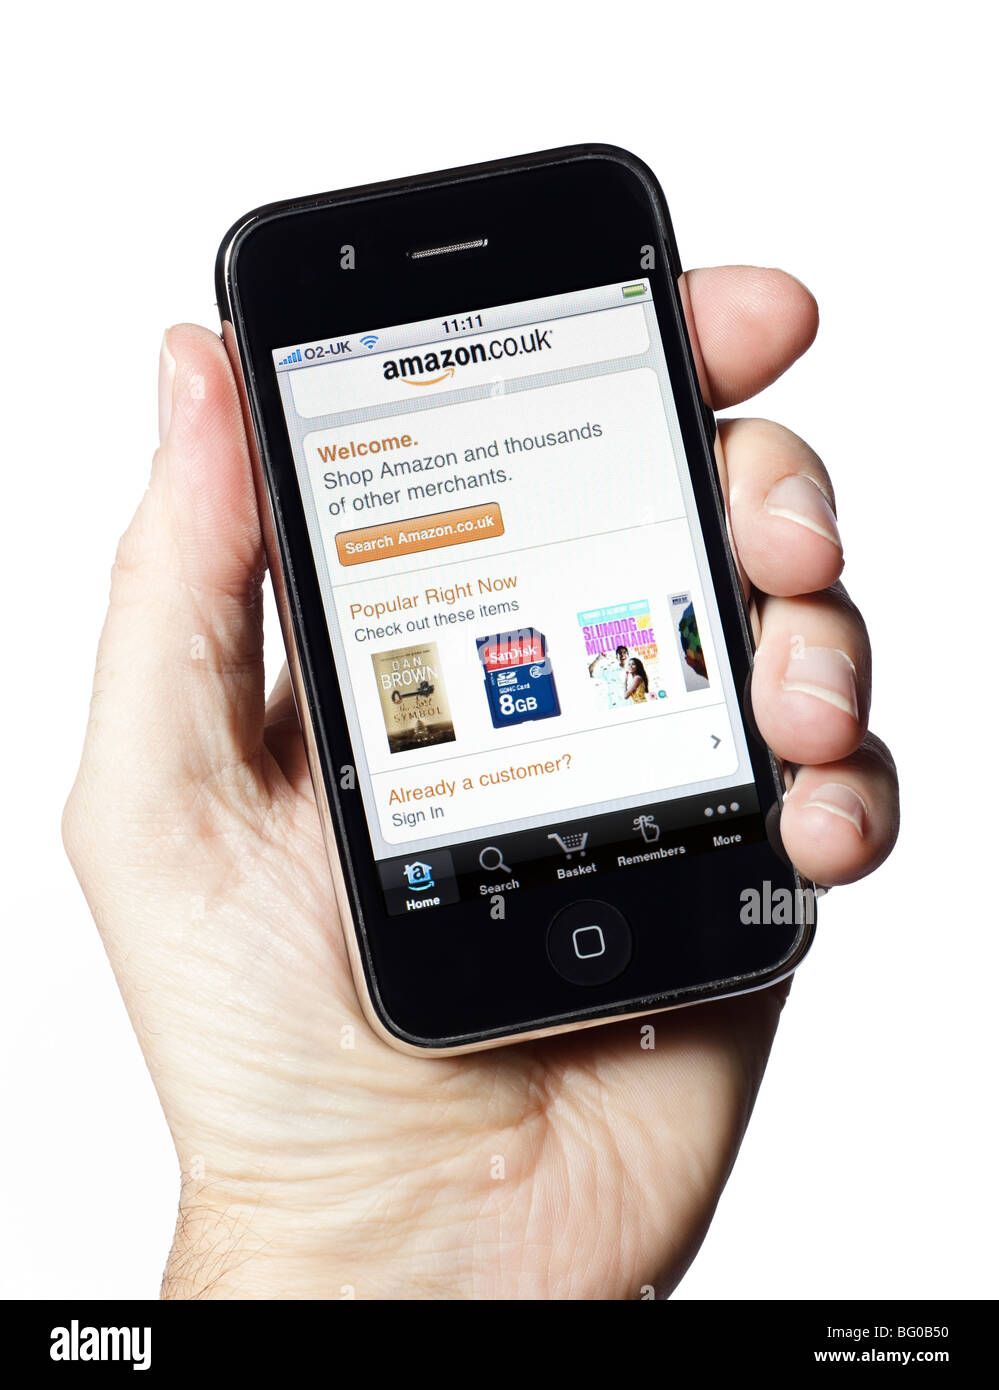 Homme hand holding iPhone montrant l'application d'achat en ligne Amazon Photo Stock